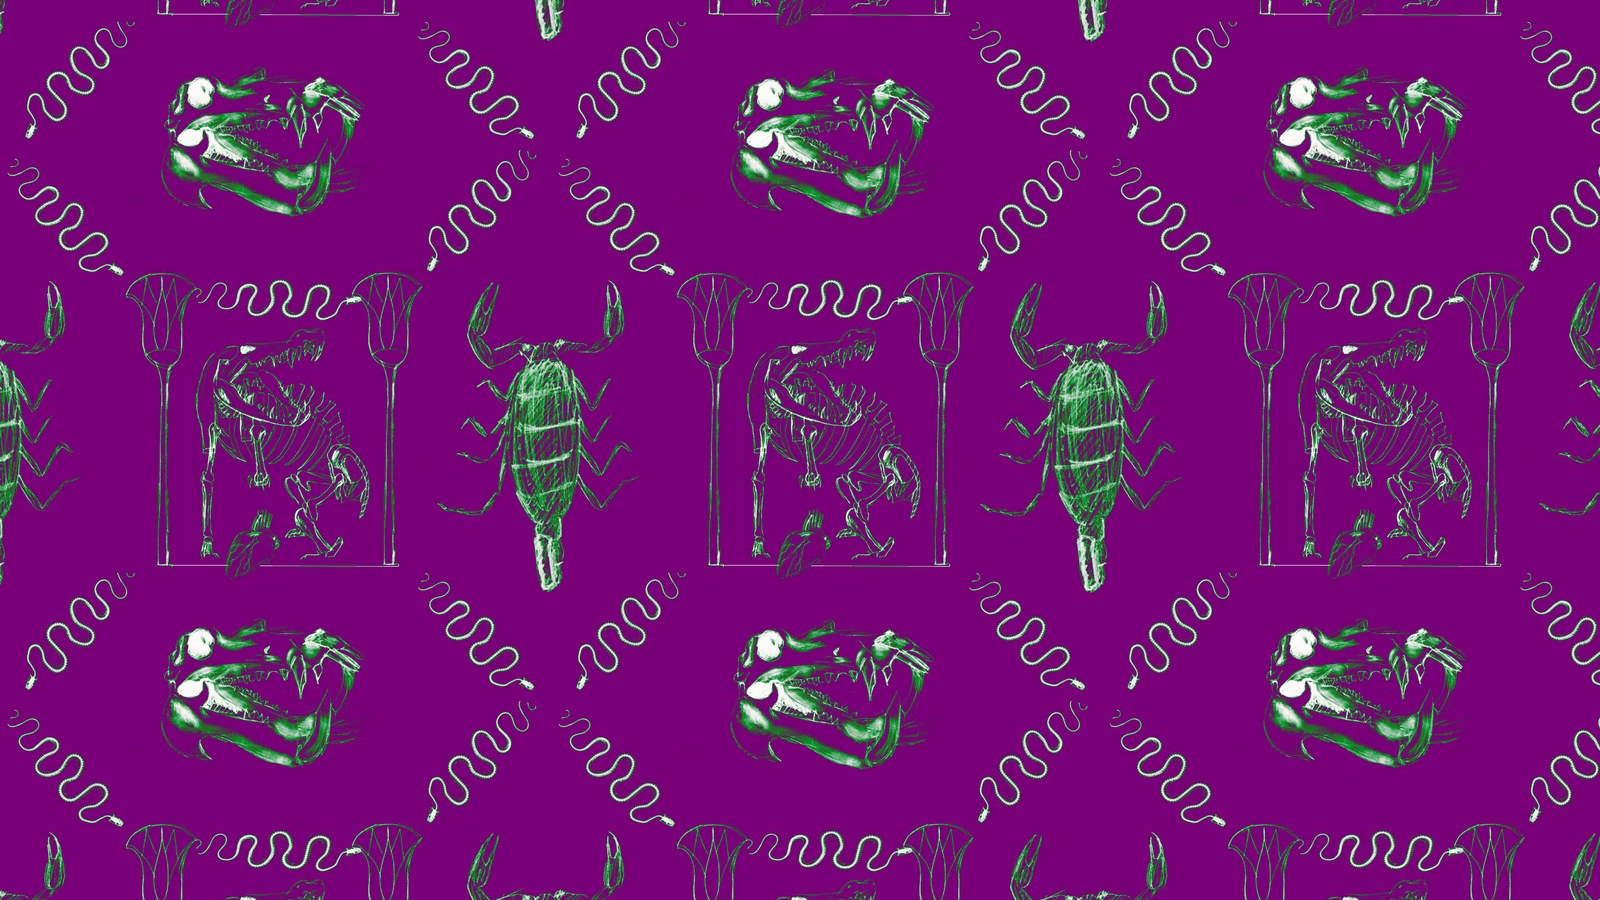 Free Download Trololo Blogg Wallpaper Calculator Pattern Repeat Uk 1600x1600 For Your Desktop Mobile Tablet Explore 42 Wallpaper Calculator With Repeat How To Calculate Wallpaper Yardage How Much Wallpaper